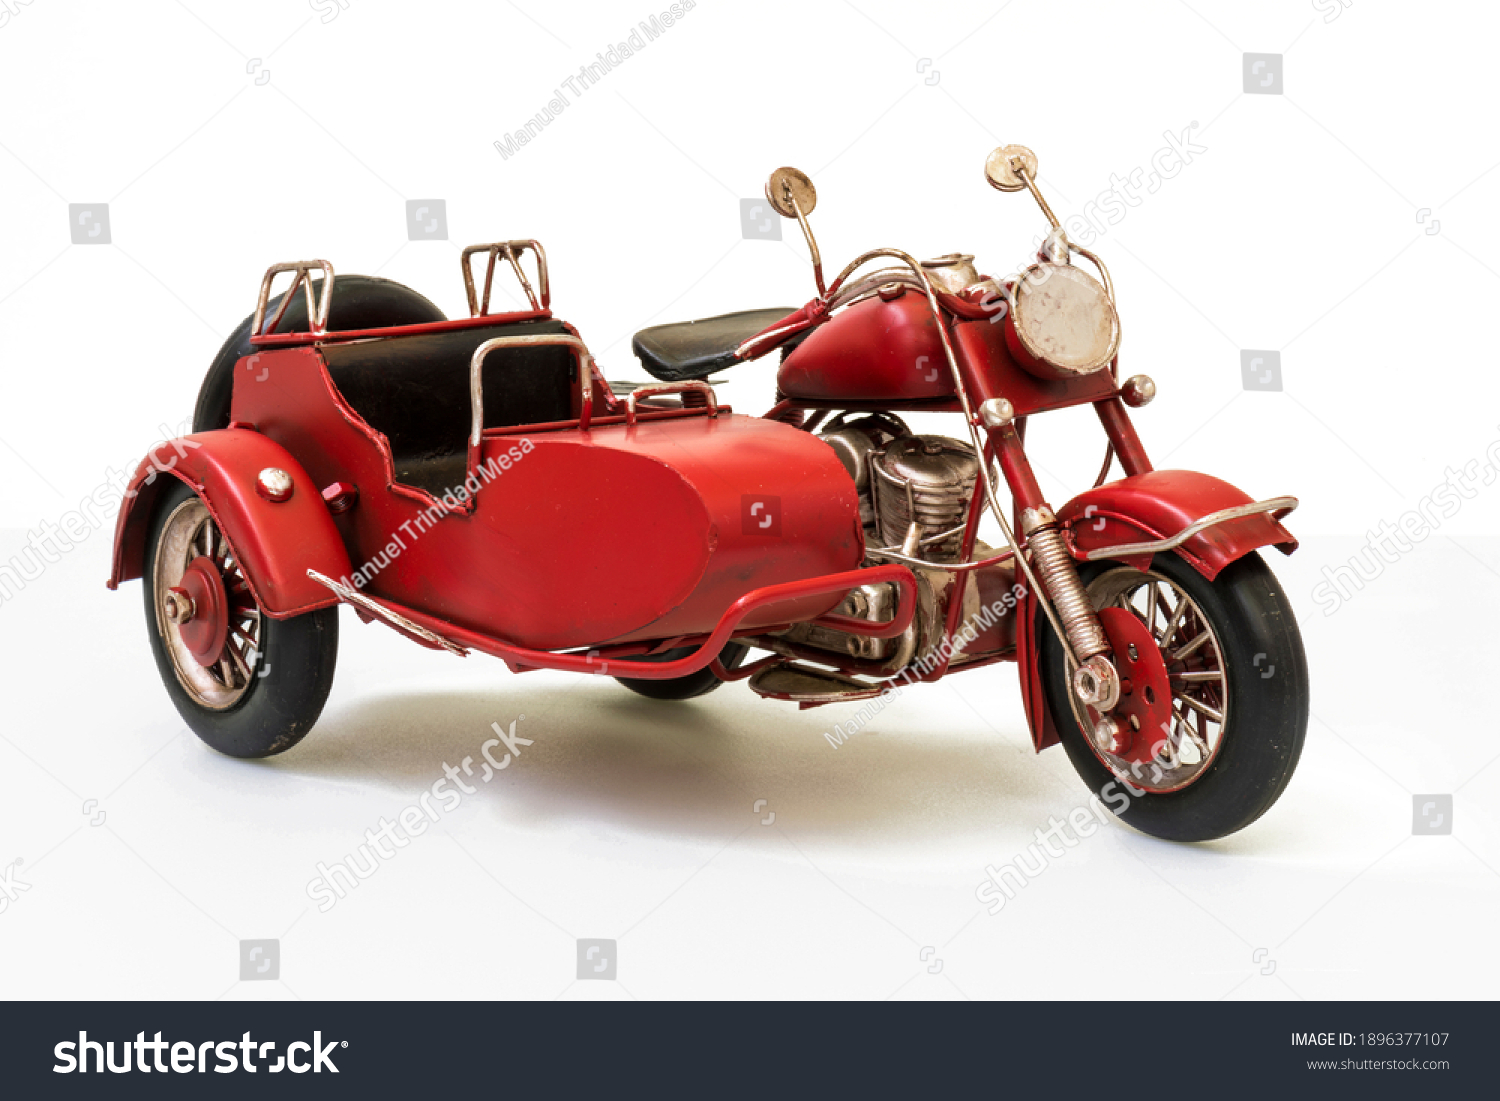 stock-photo-motorcycle-with-sidecar-old-